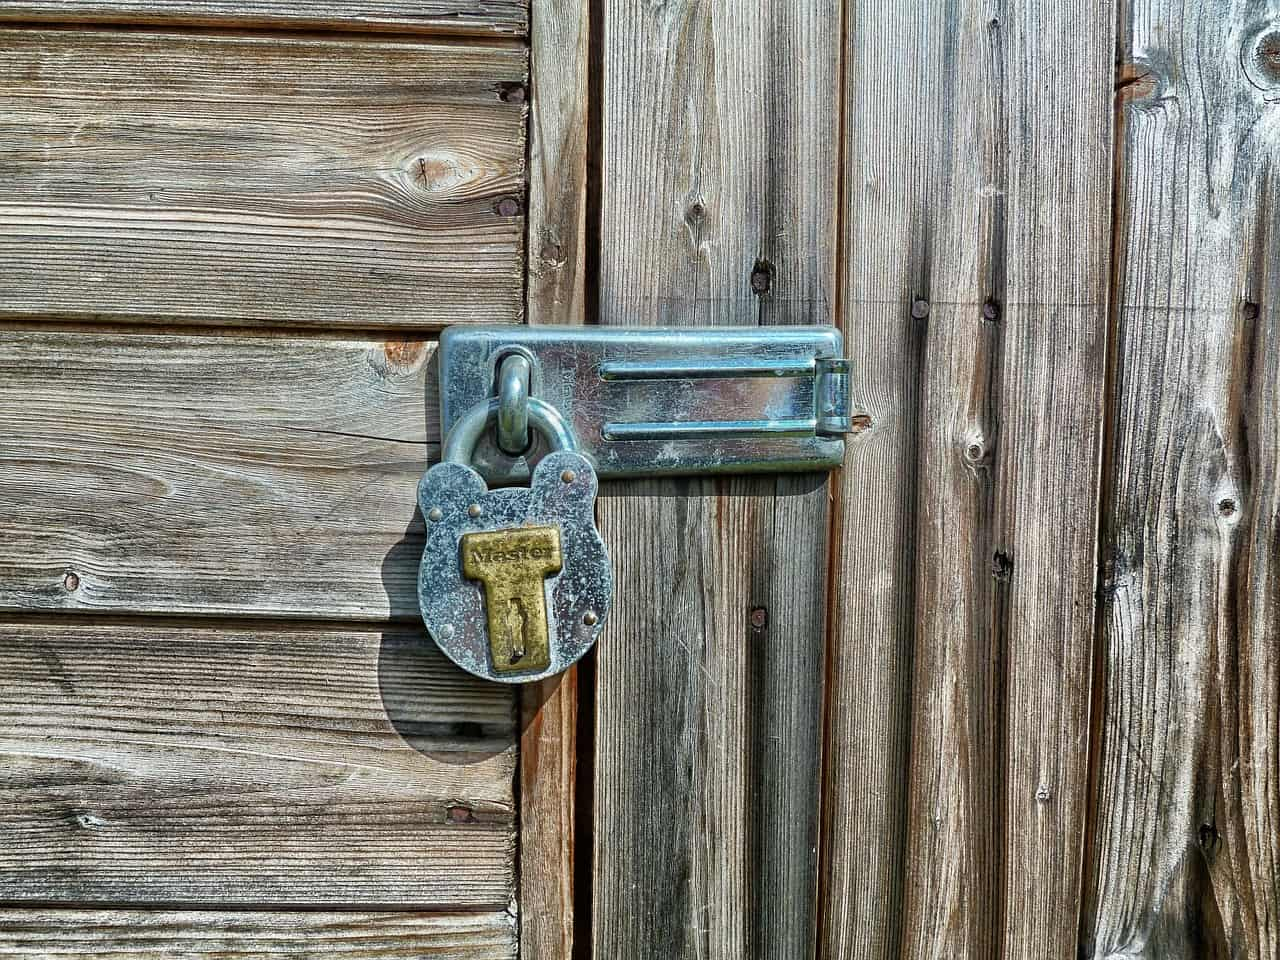 Don't give thieves shedloads of opportunity